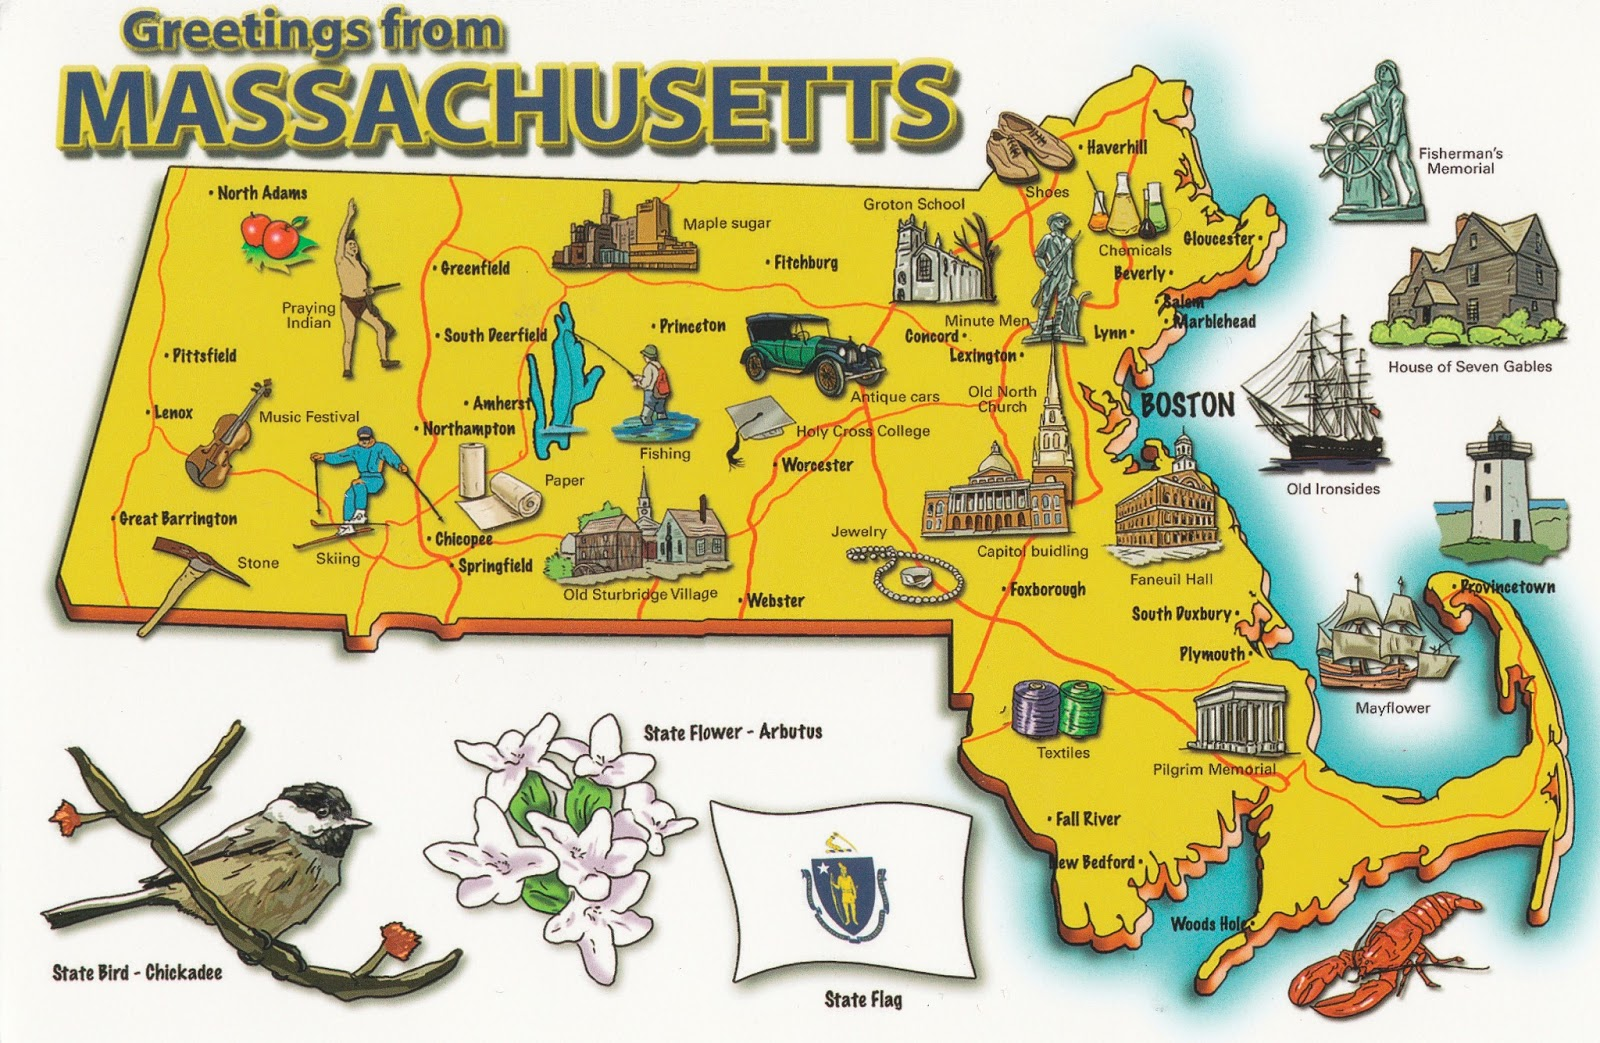 the card shows an illustrated map of massachusetts with state emblems such as the state bird state flower and state flag and various tourist attractions